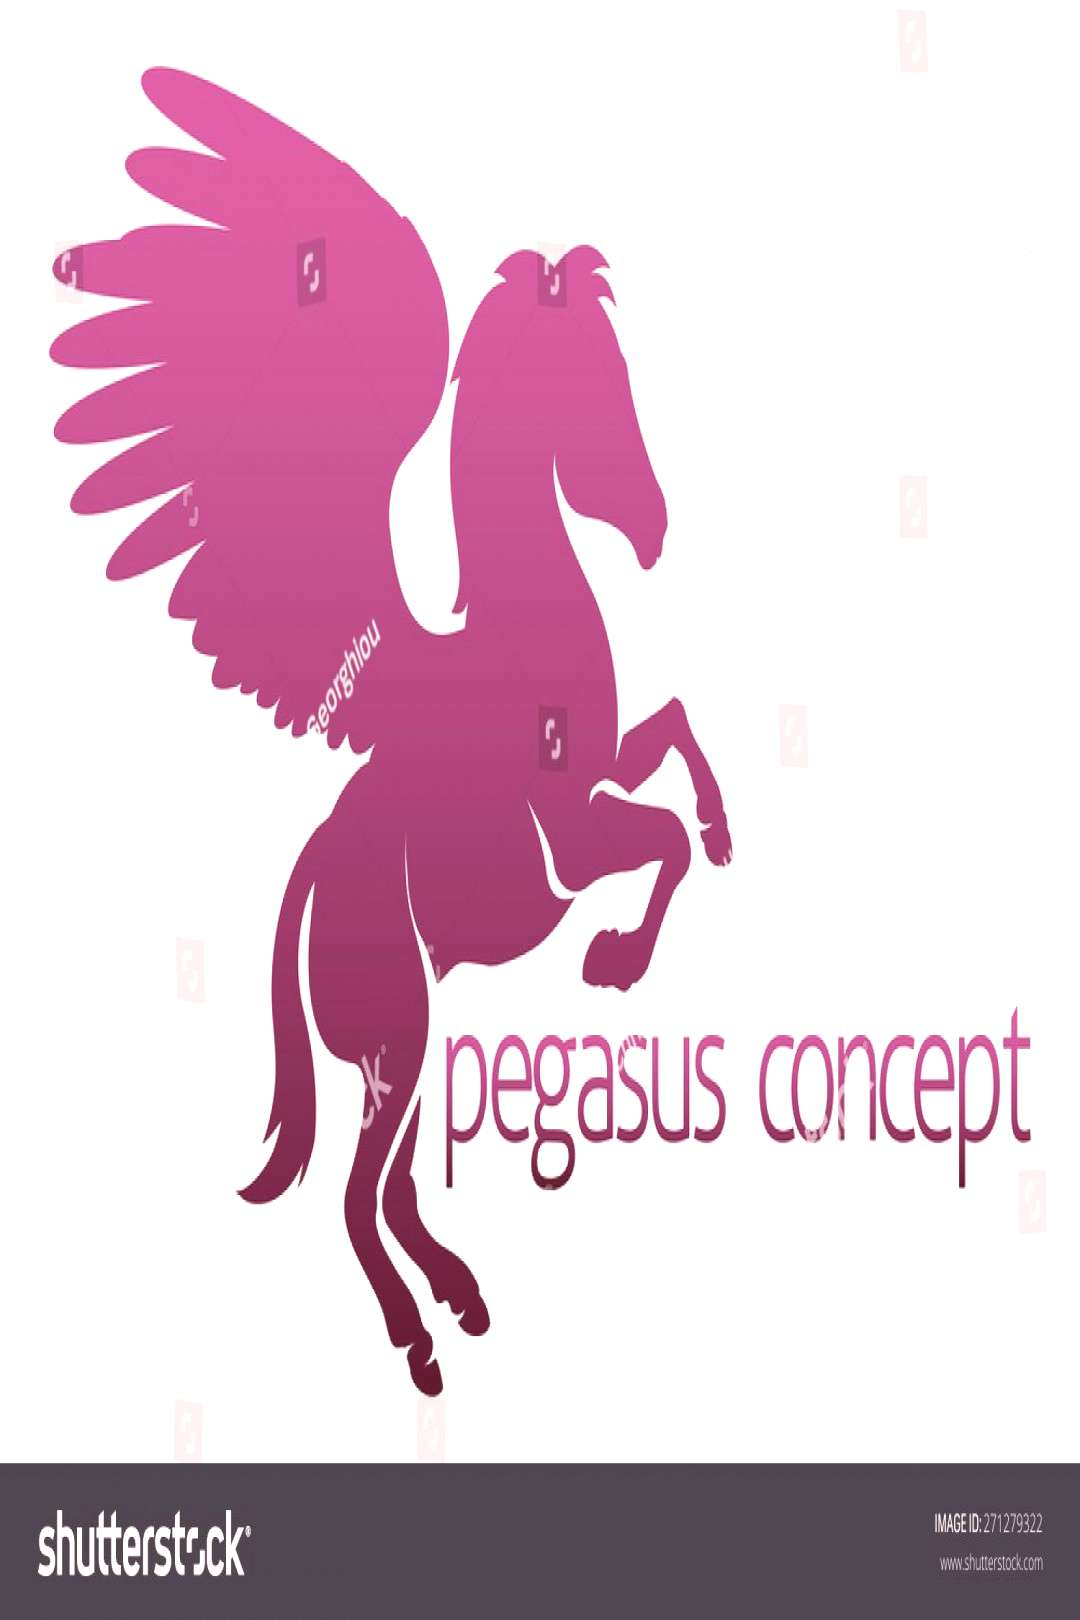 An illustration of an abstract pegasus winged horse concept design ,